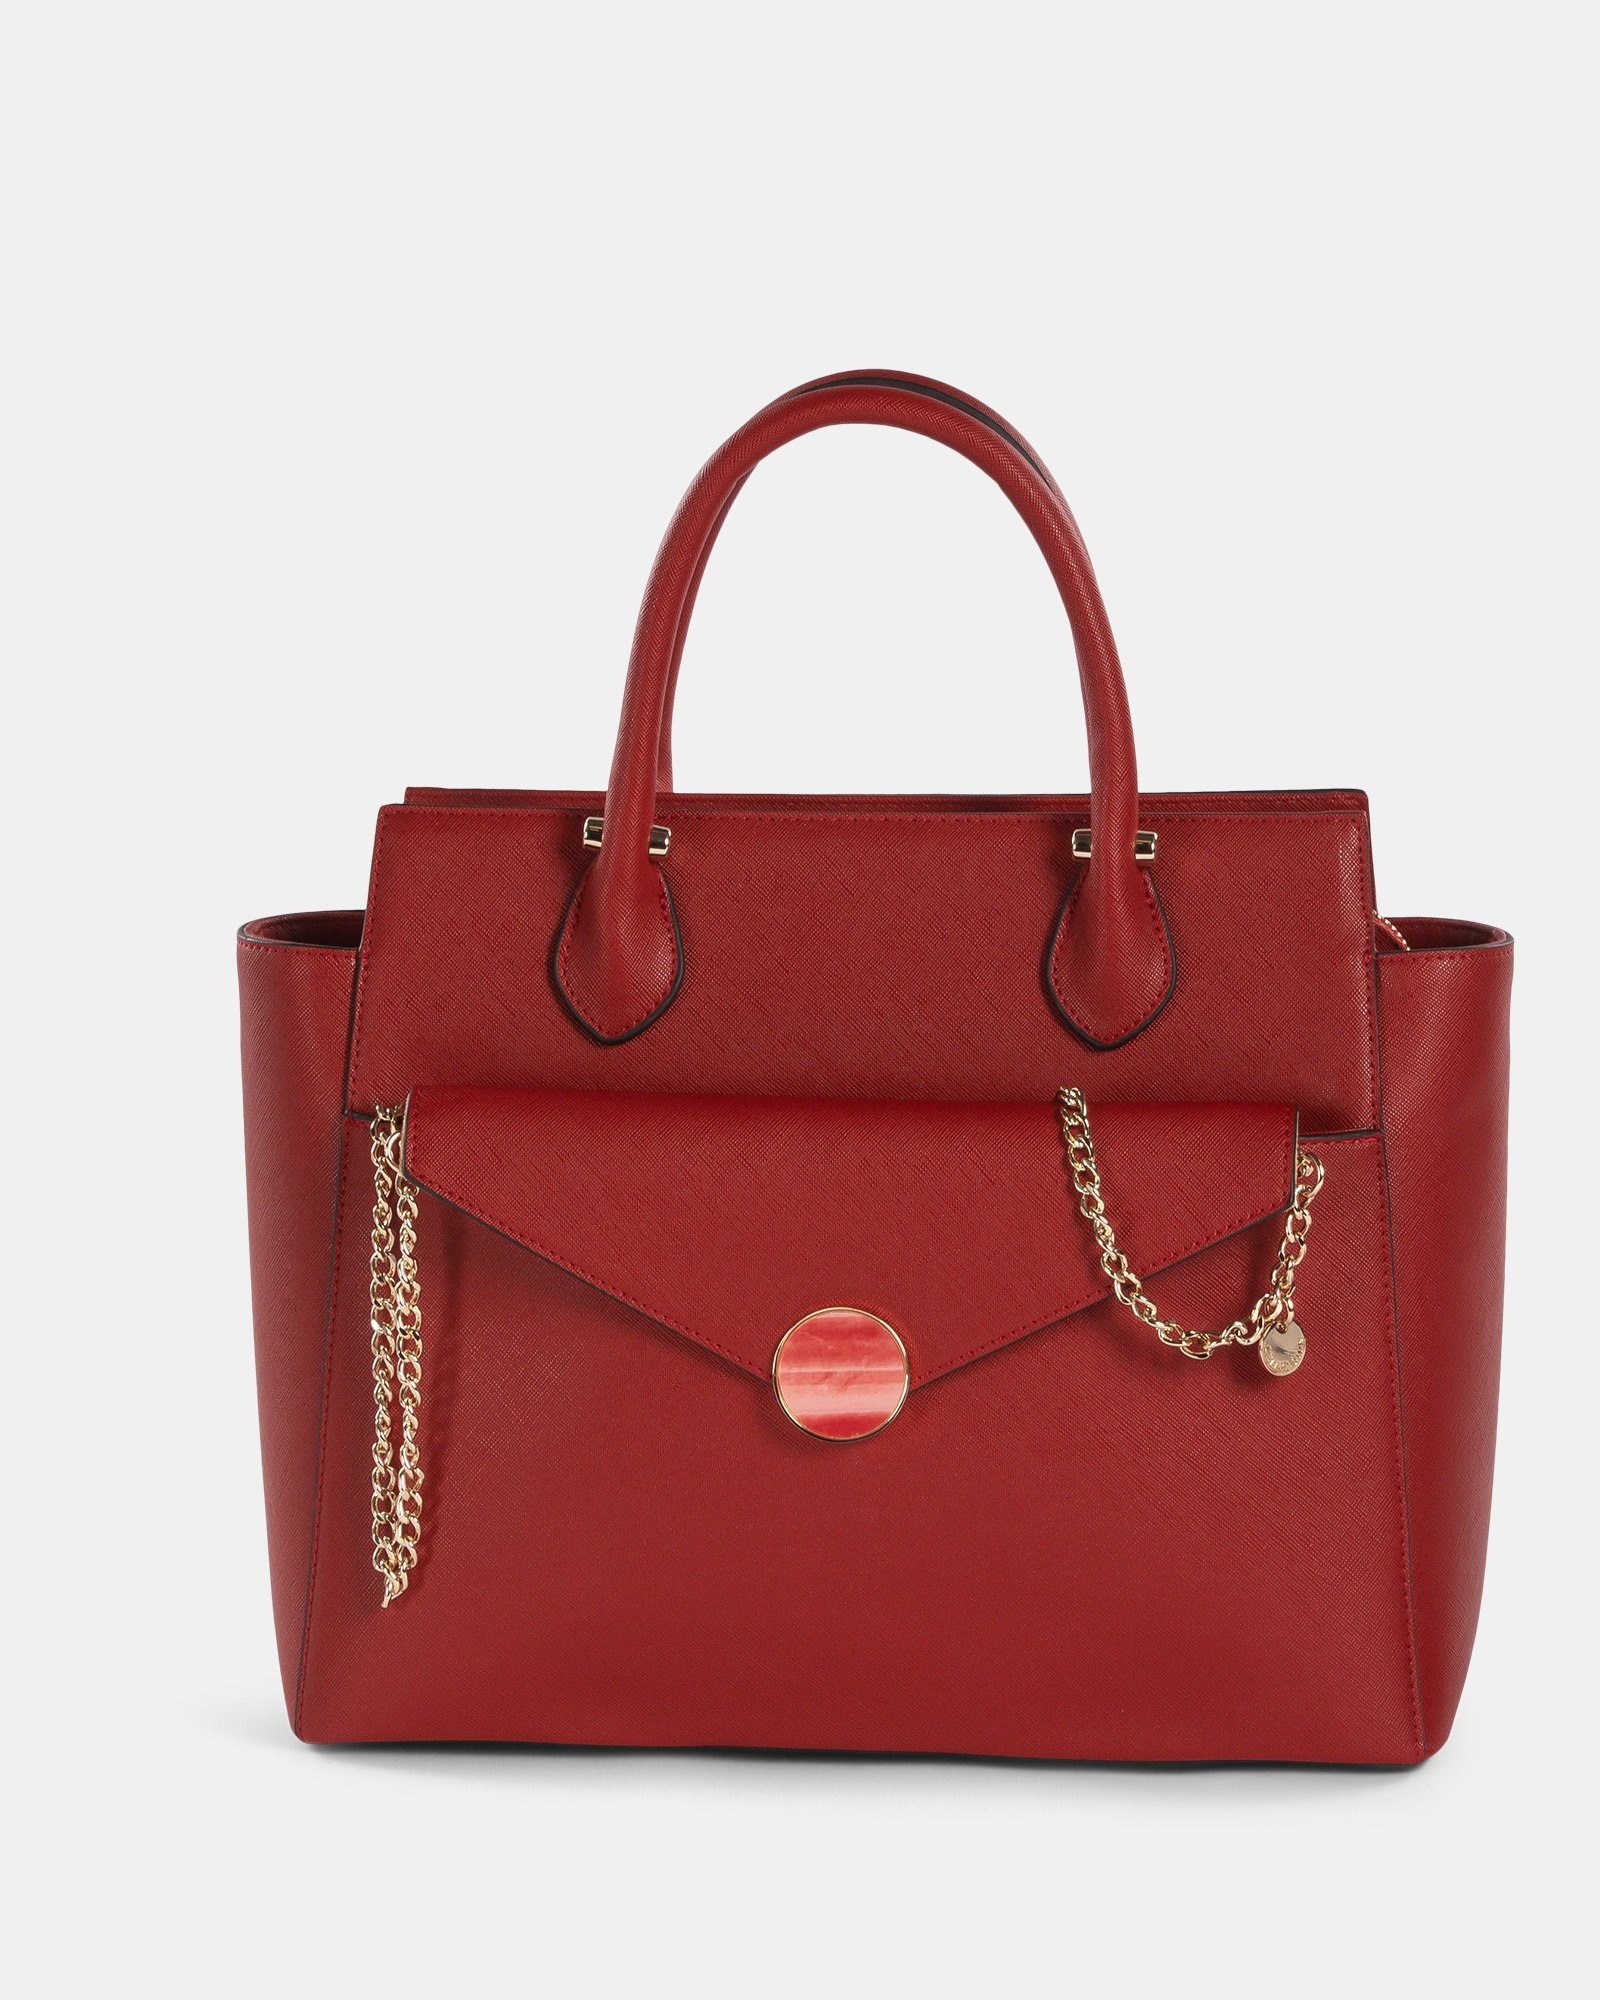 Grazioso - Satchel with Adjustable detachable strap and cluth - red - Céline Dion - Zoom